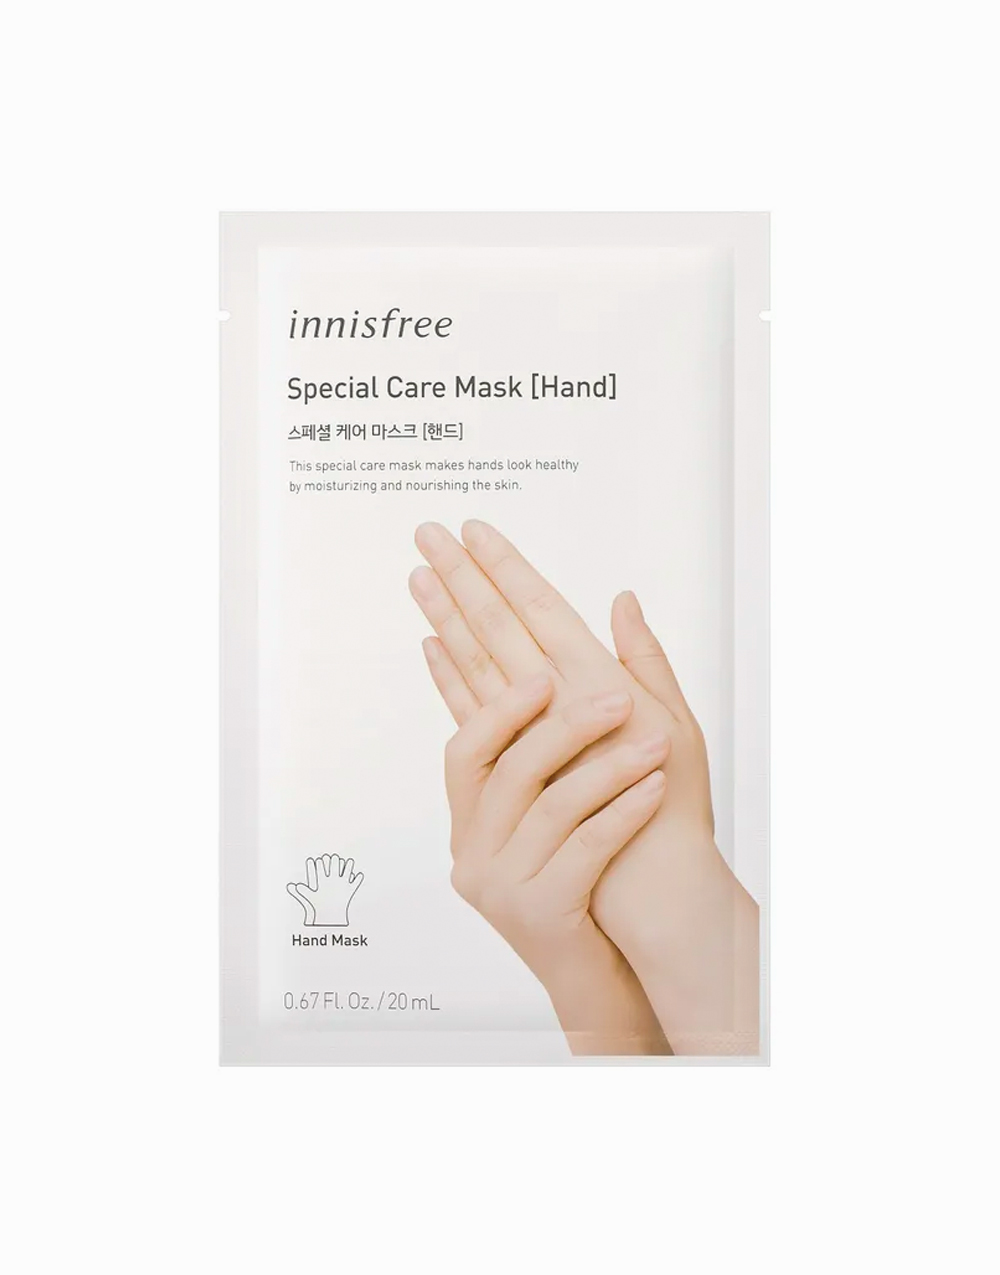 Special Care Mask for Hand by Innisfree